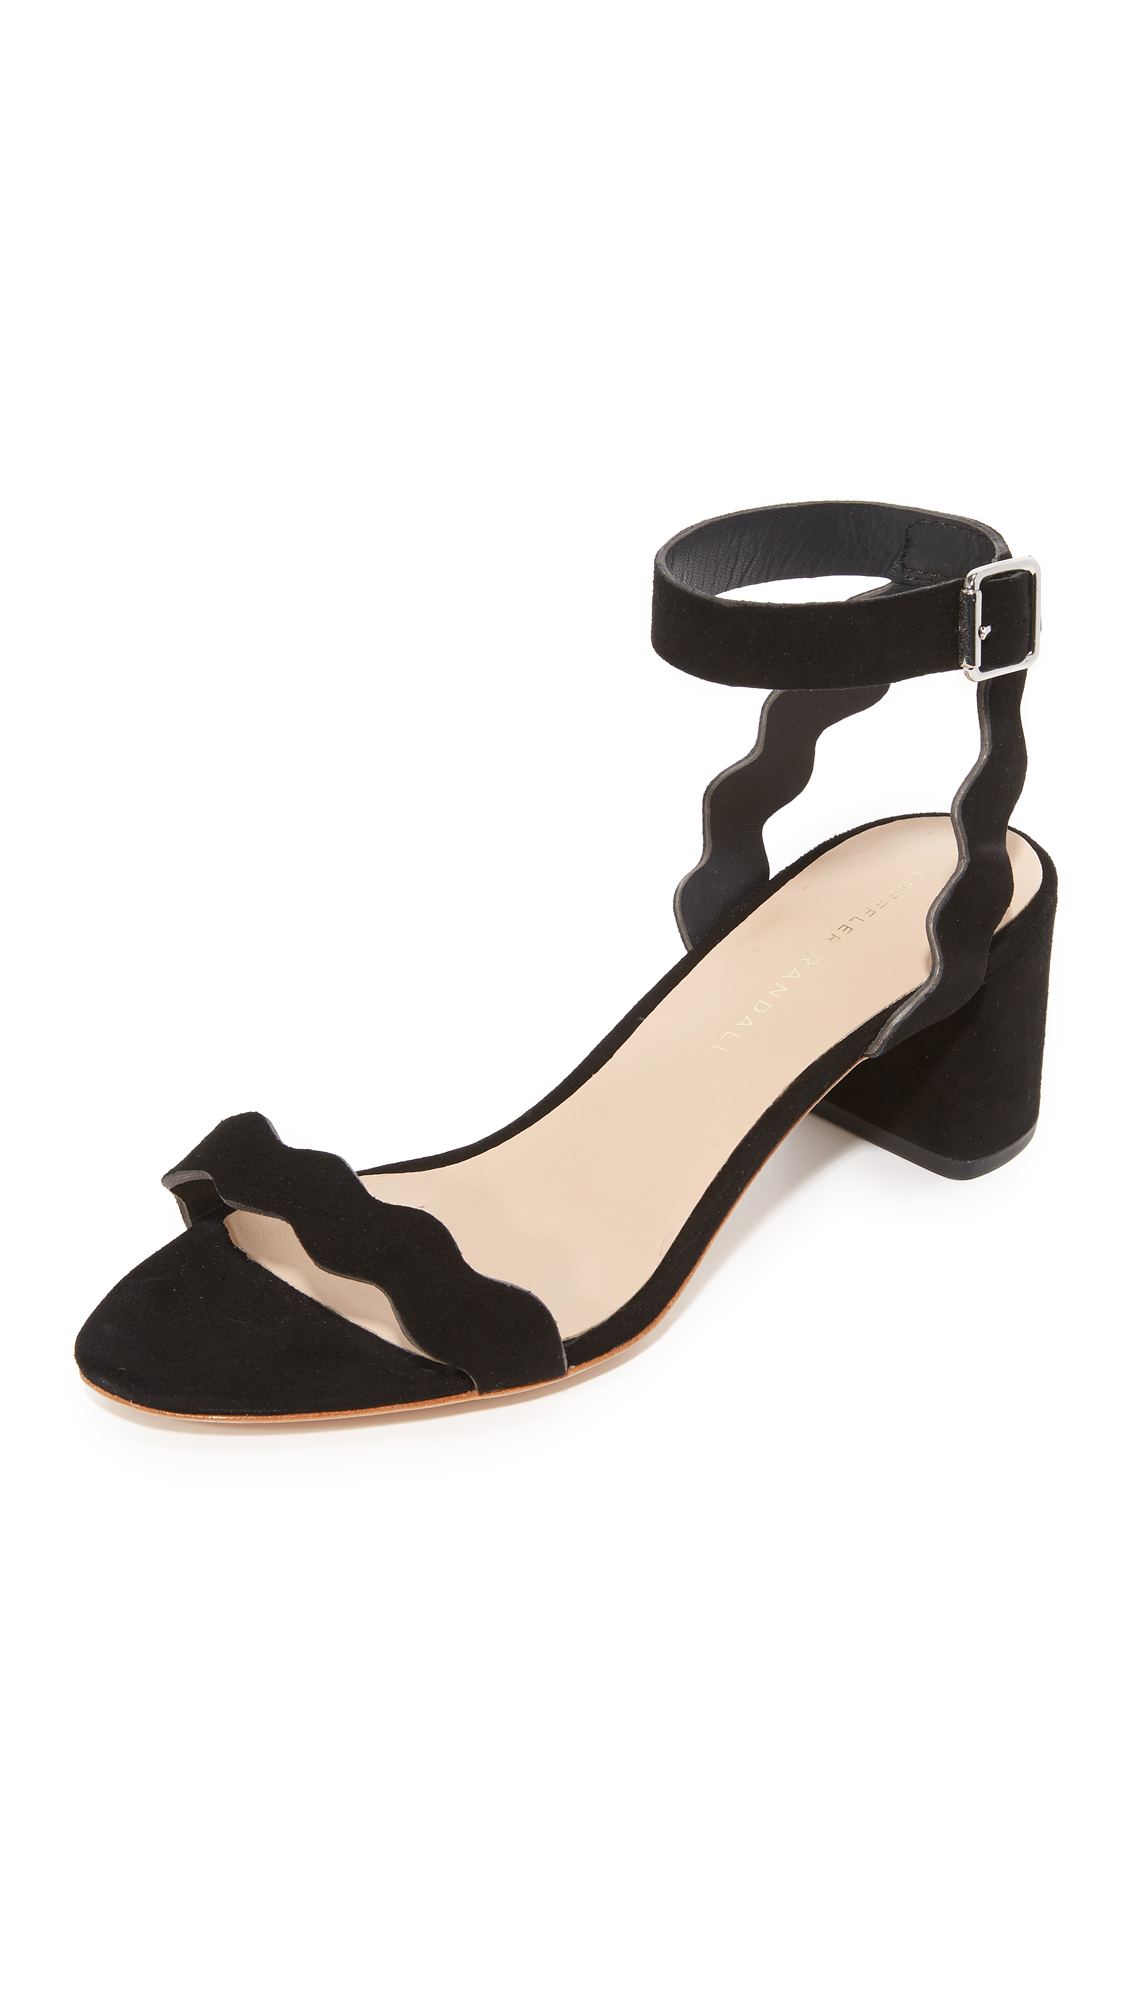 Loeffler Randall Emi City Sandals - Black